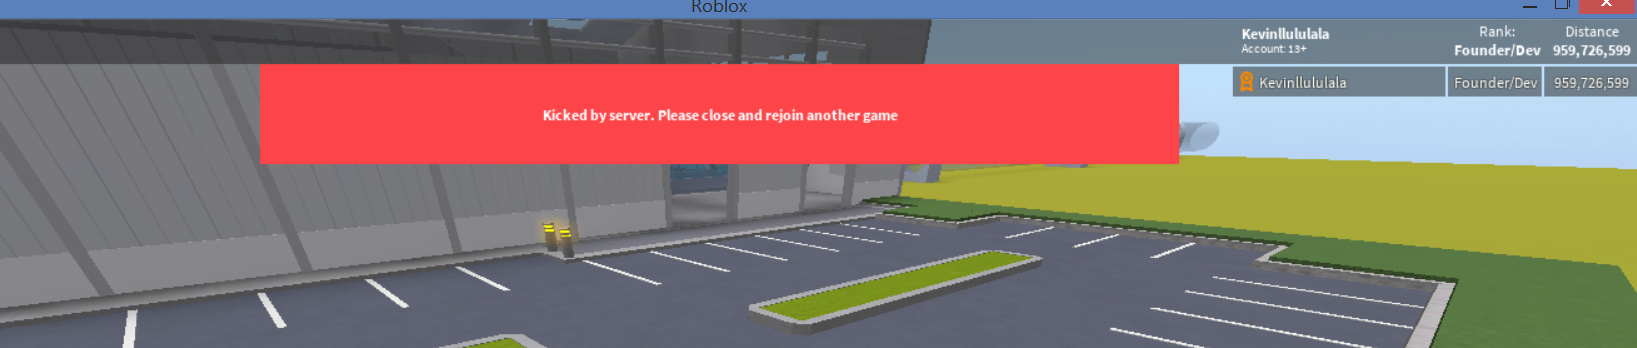 how to fix lost connection on roblox